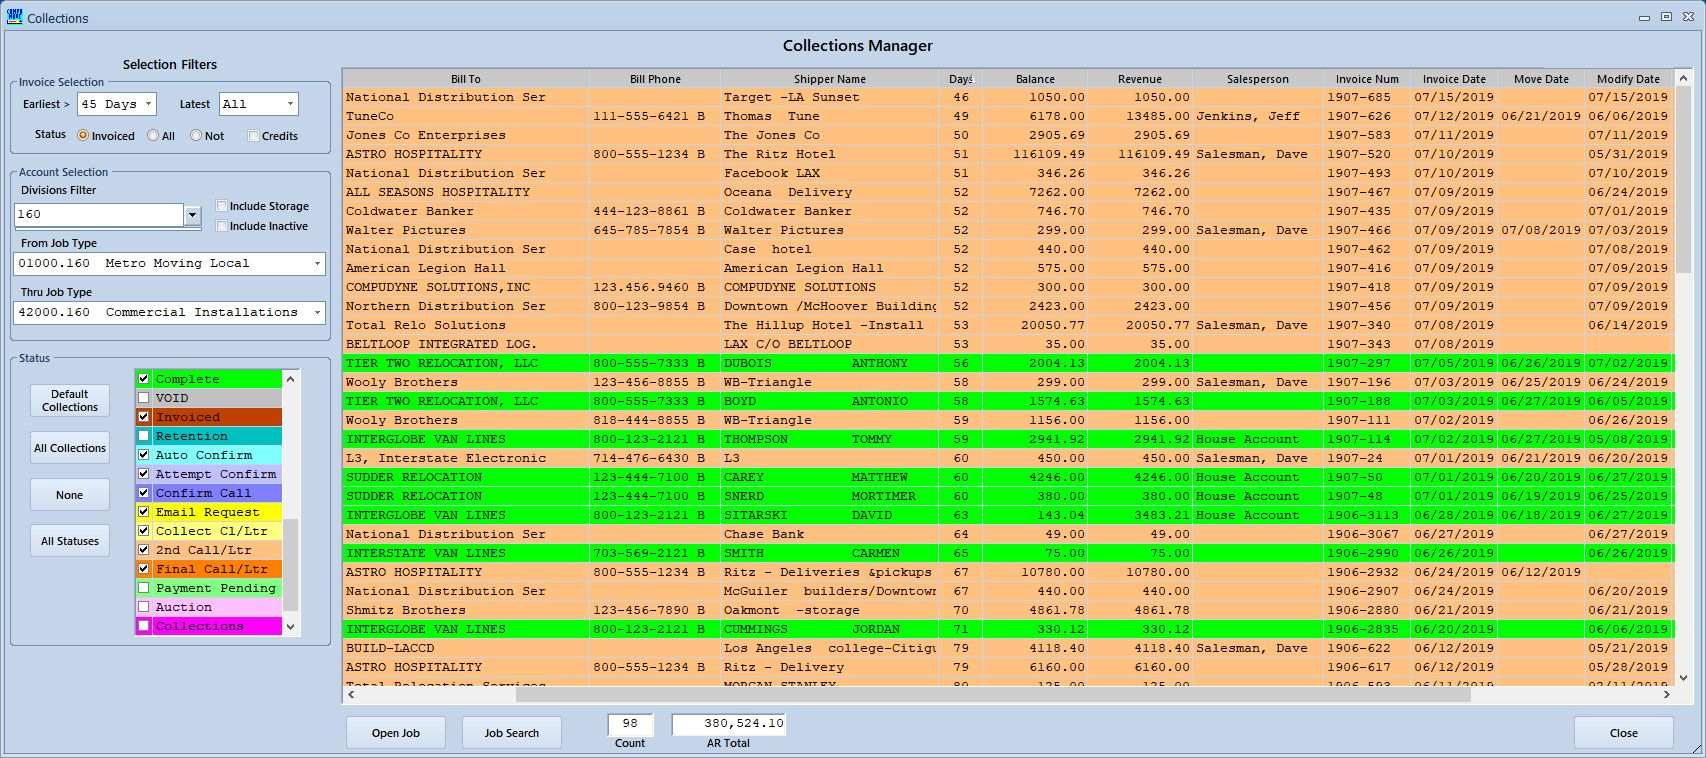 CompuMoves's Collections Manager Screen